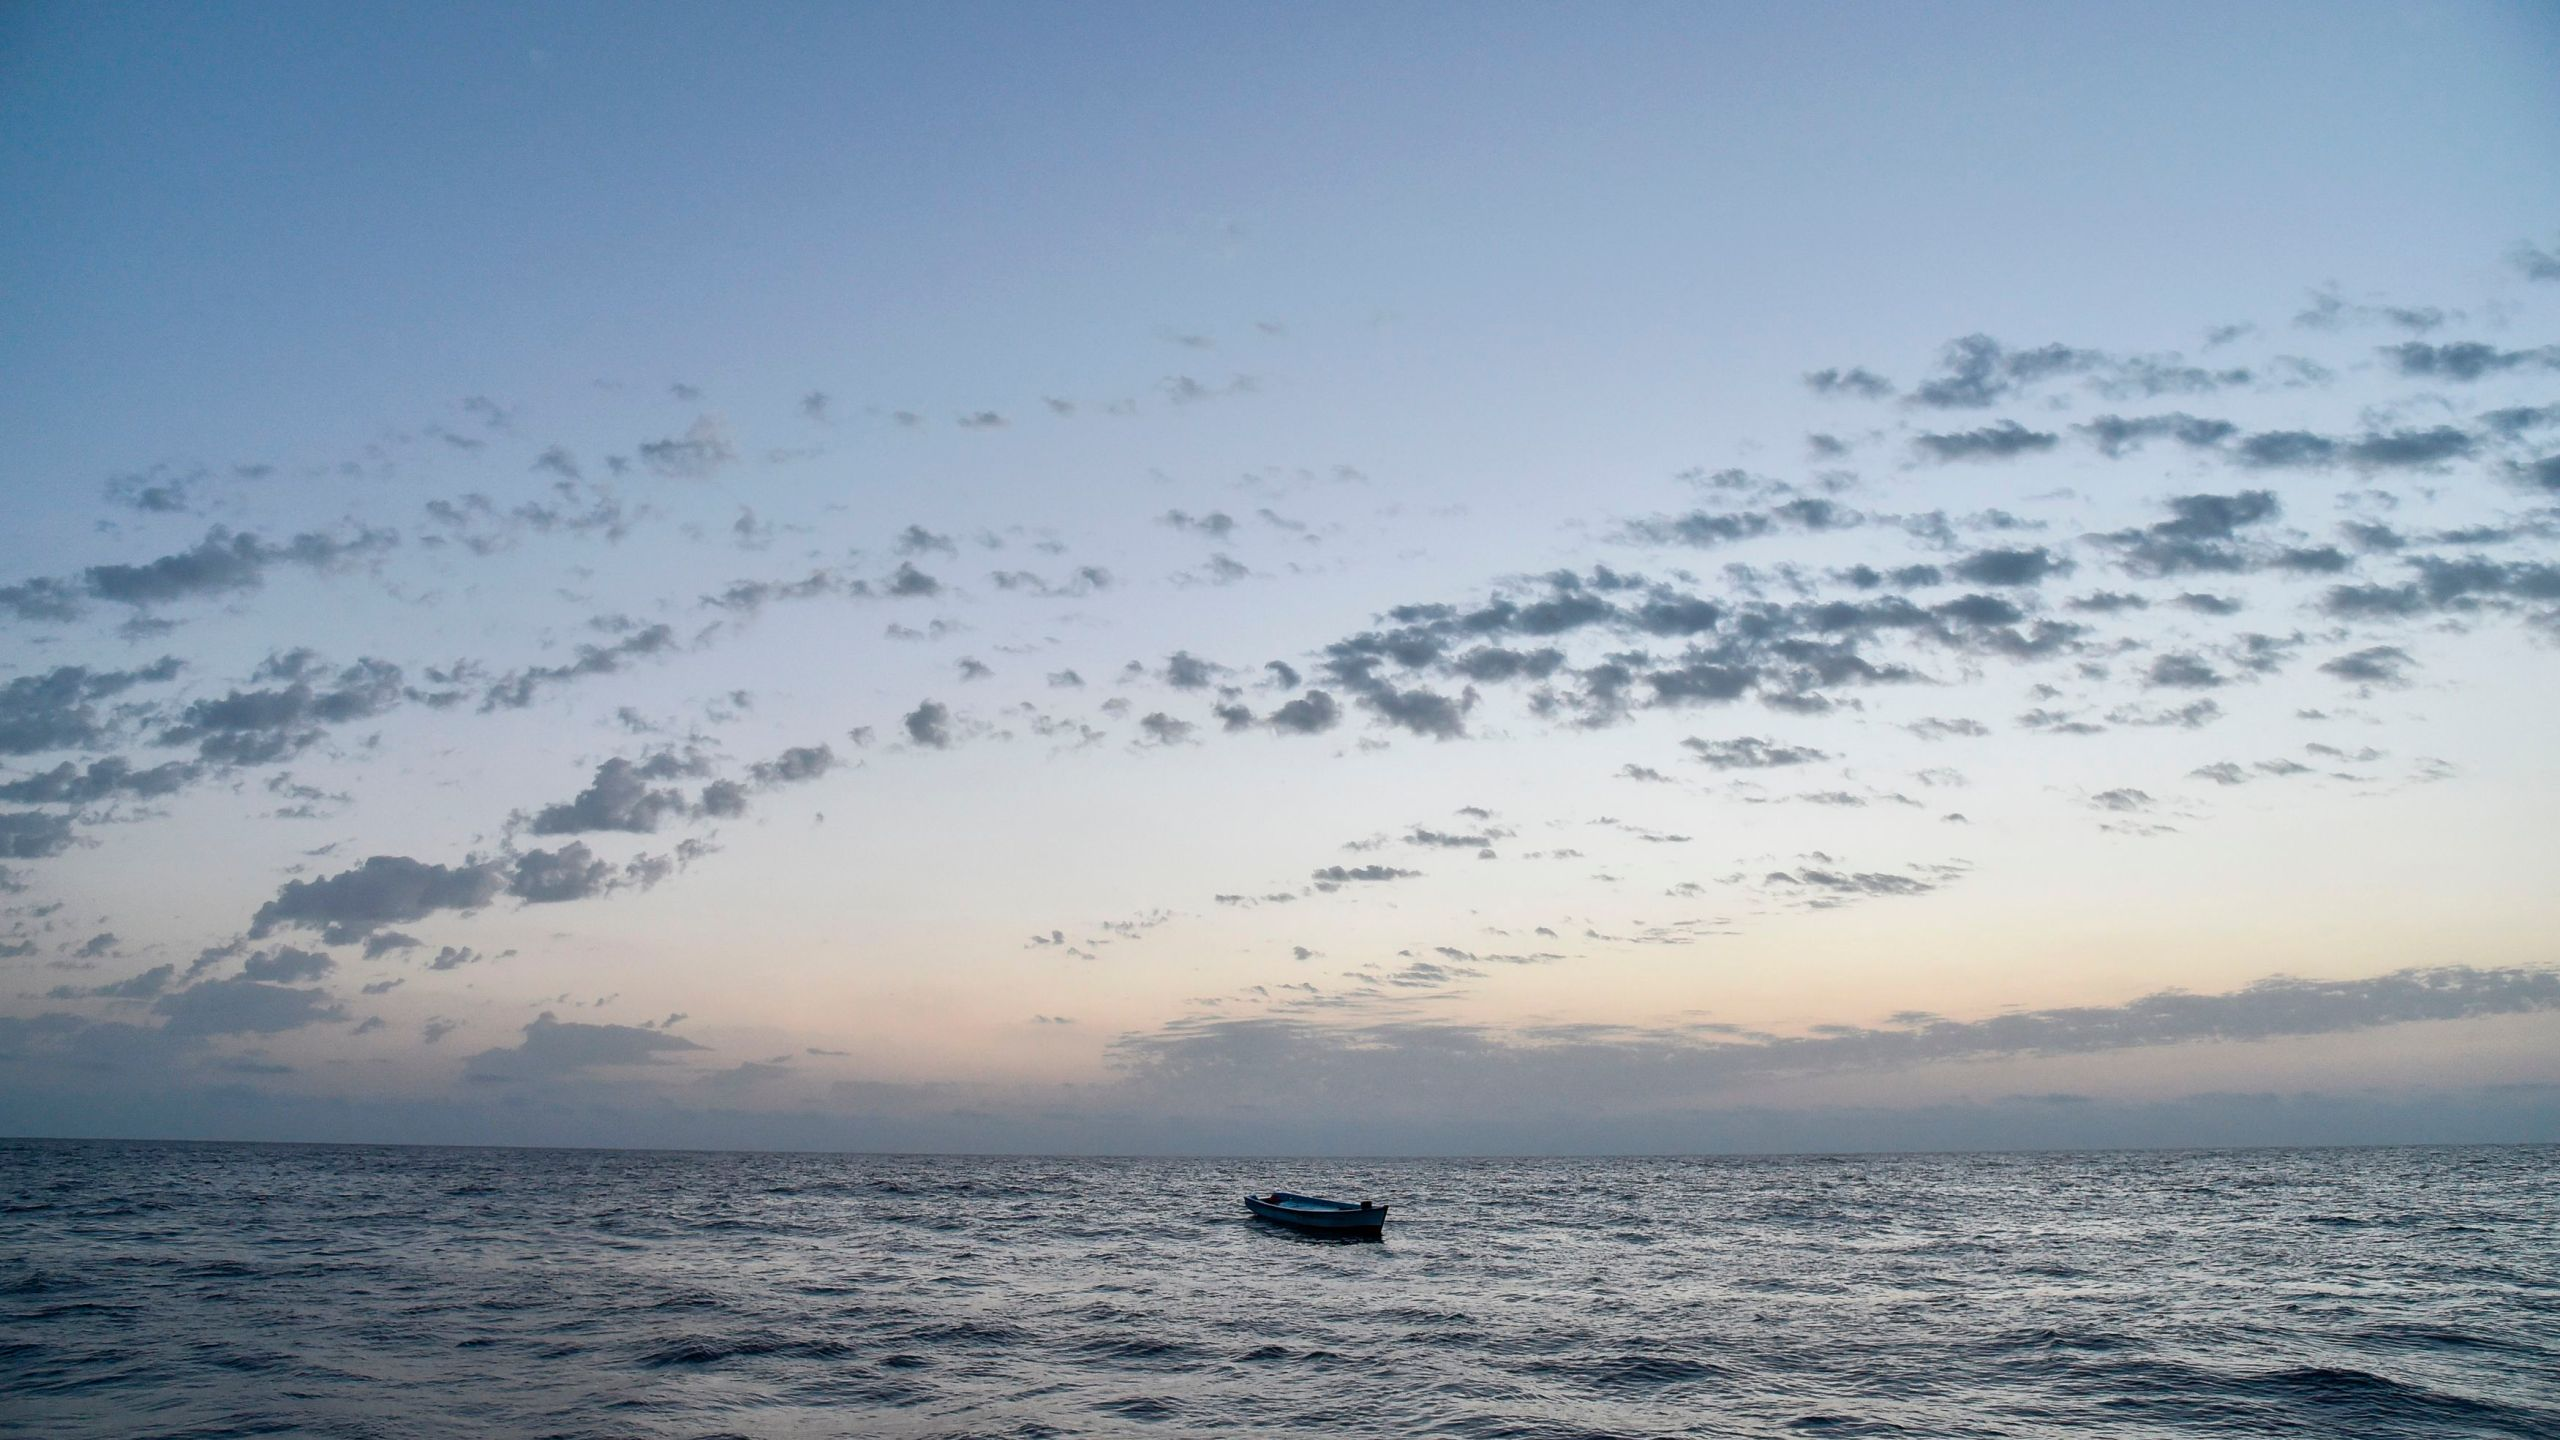 A small wooden boat used by migrants to cross the Mediterranean Sea is abandoned after a rescue operation on November 3, 2016, off the Libyan coast. (Credit: ANDREAS SOLARO/AFP/Getty Images)